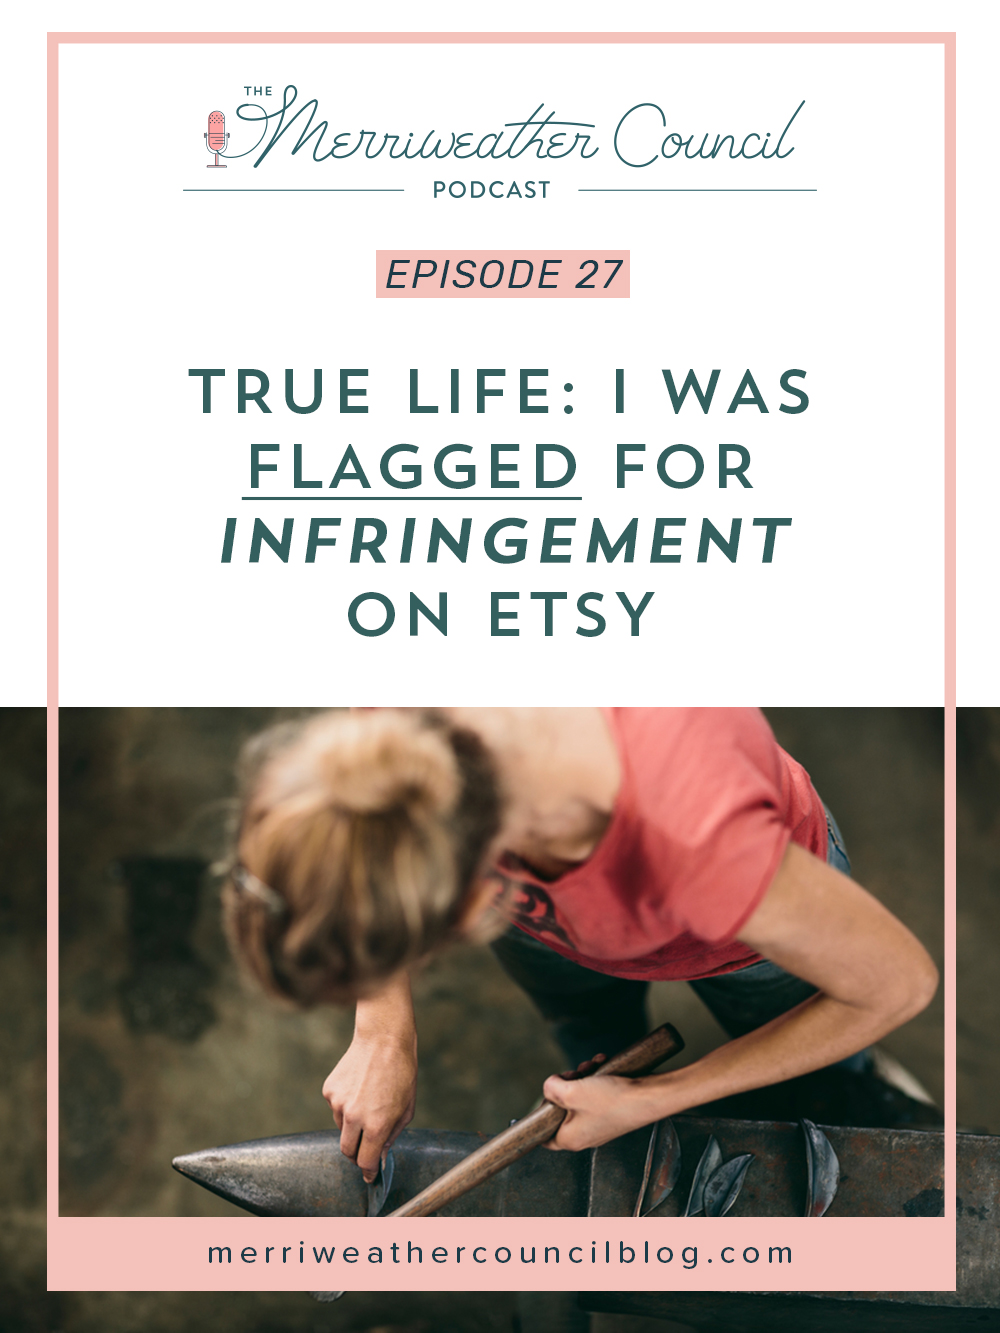 true life I was flagged for infringement on etsy | the merriweather council podcast